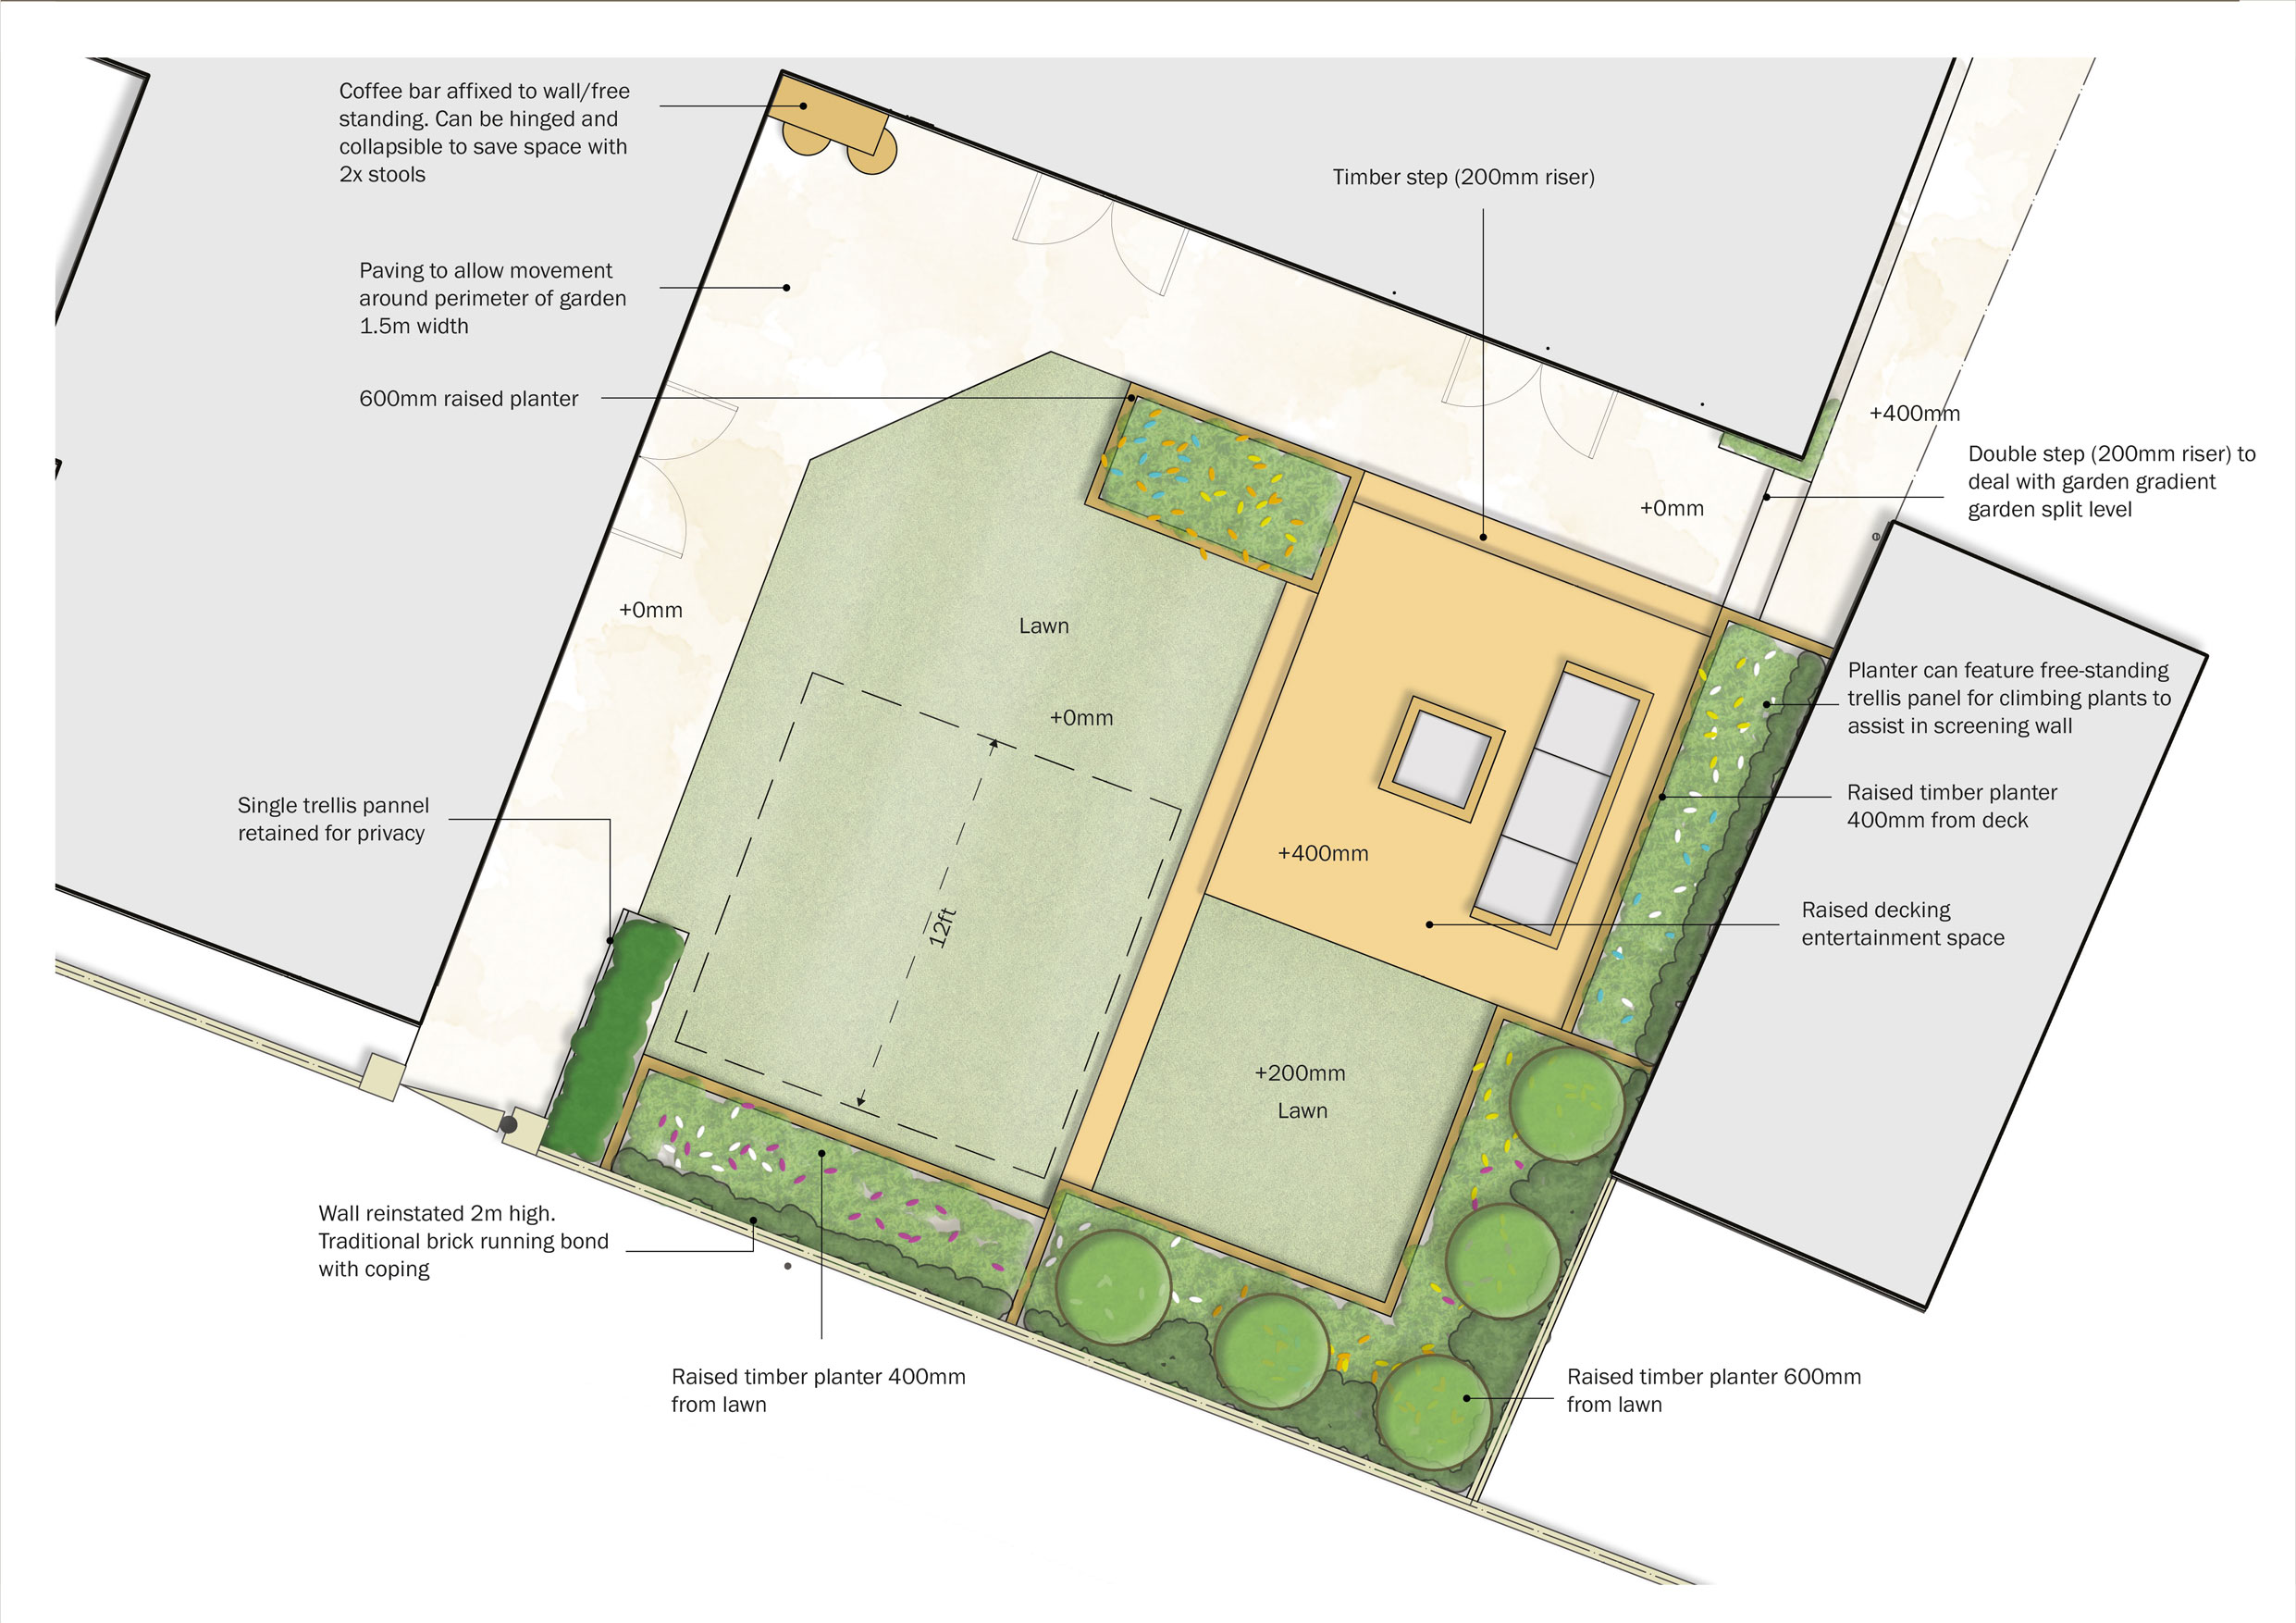 Garden Design Layout Bristol - Planting Design - Contemporary Garden